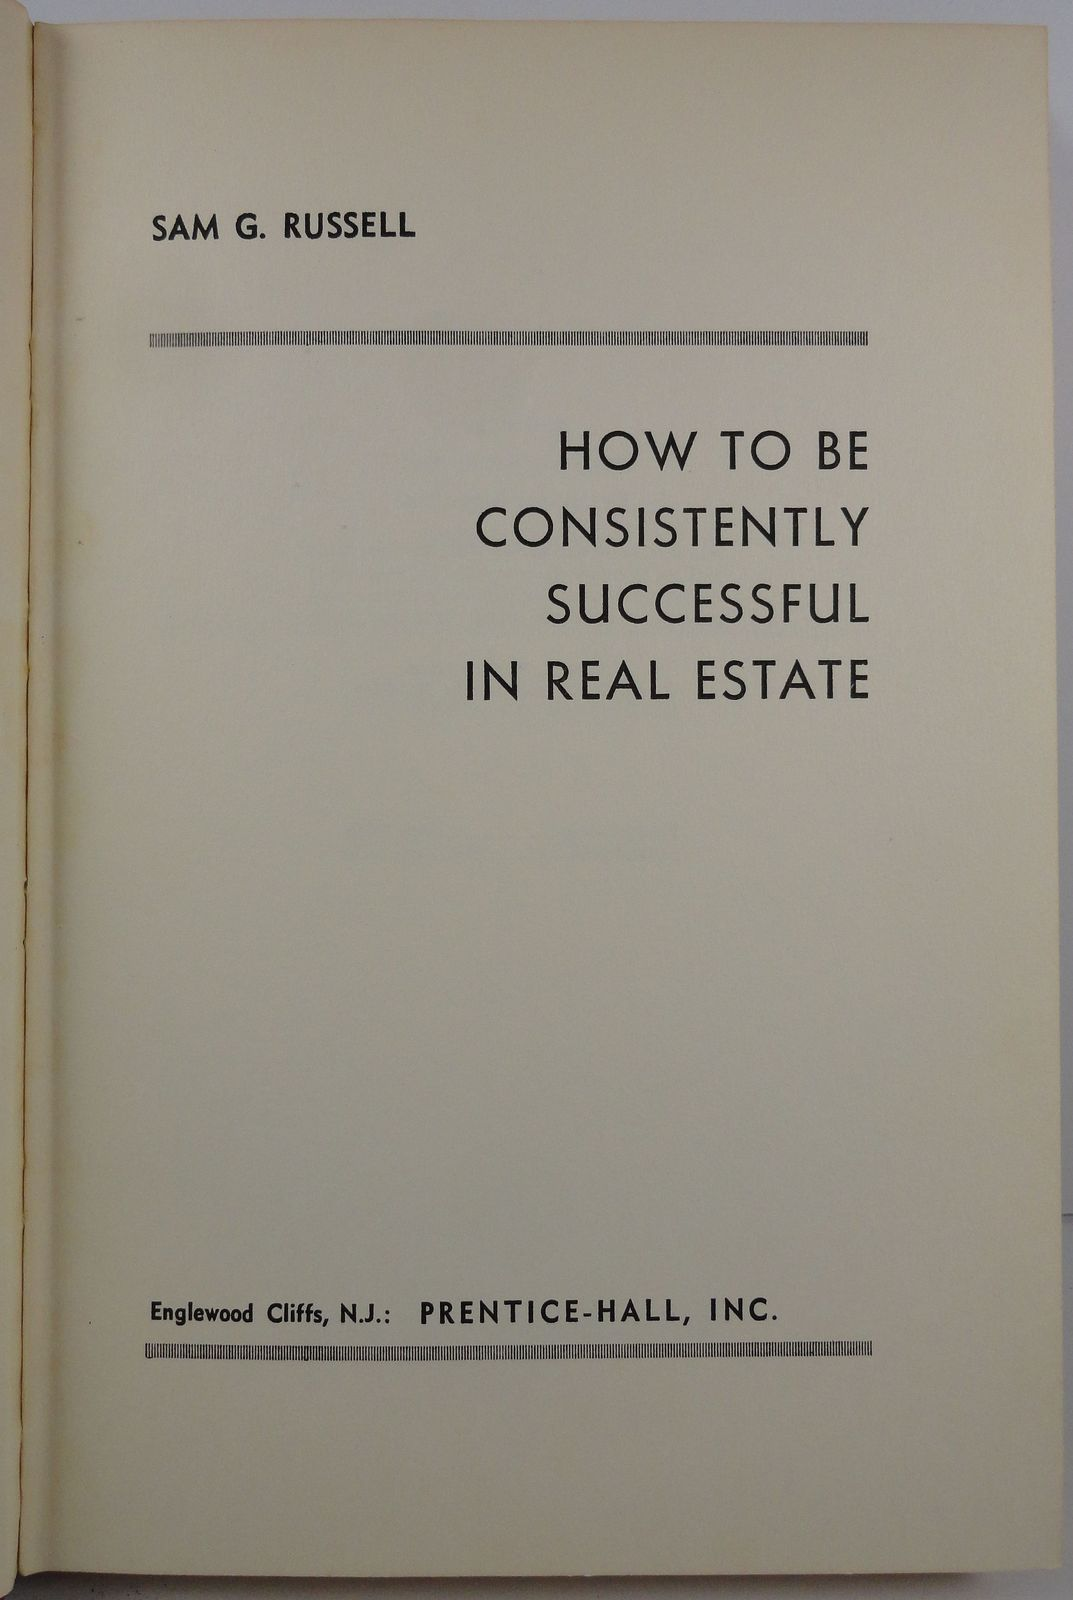 How to Be Consistently Successful in Real Estate S G Russell